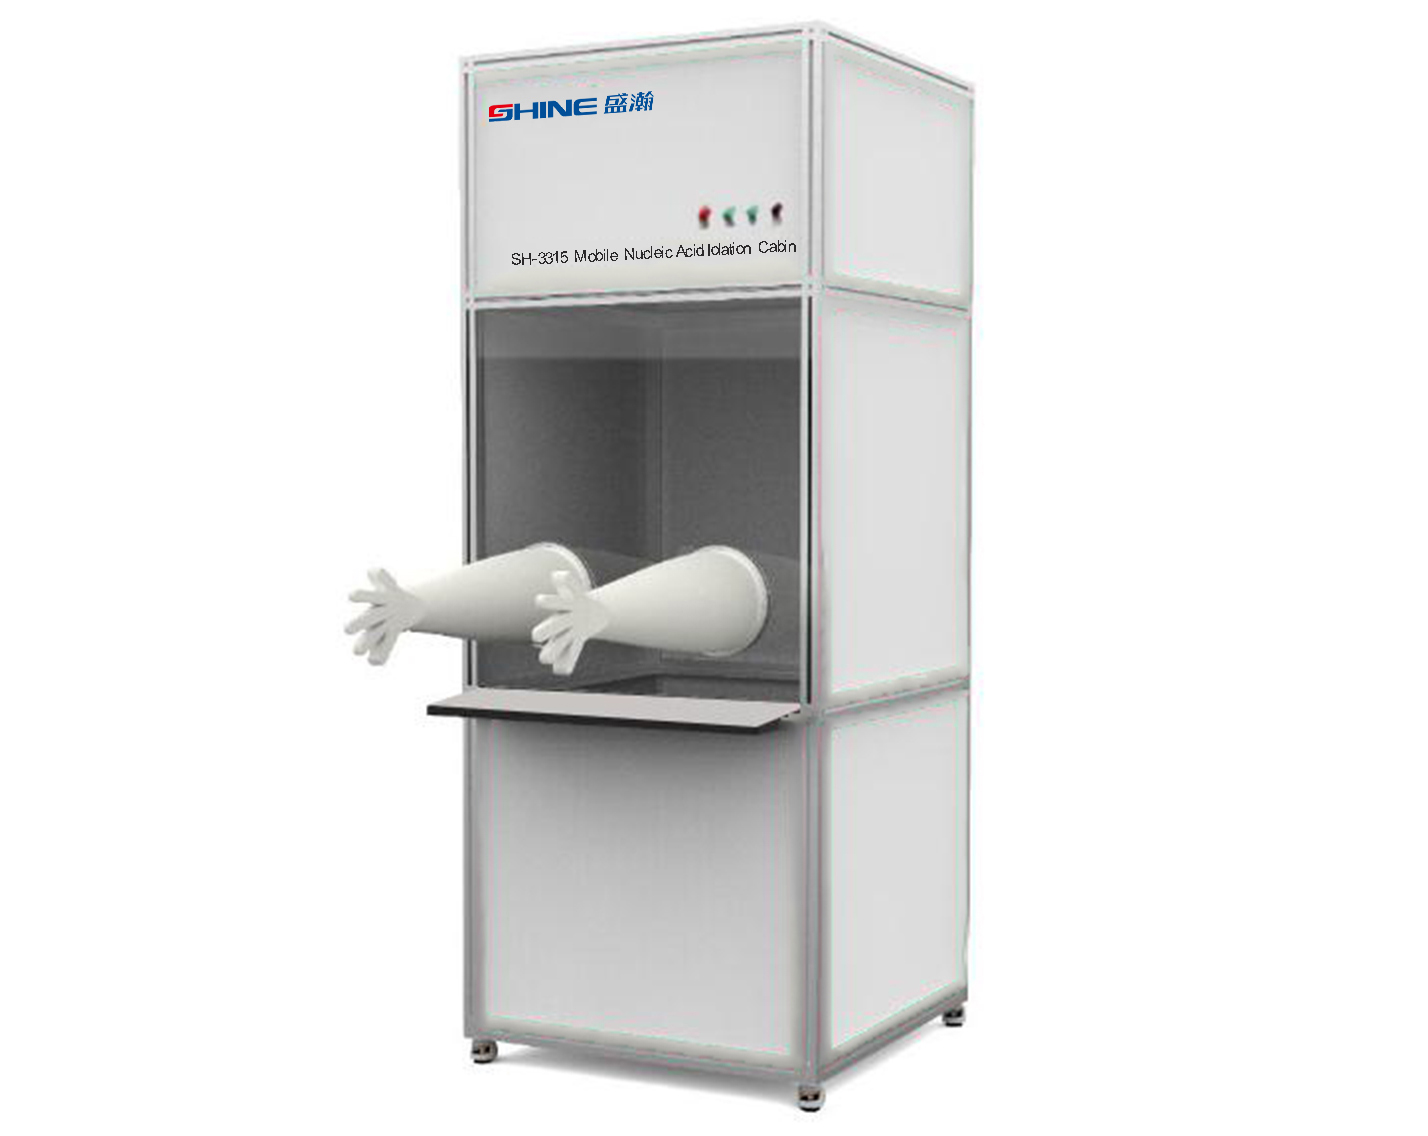 Mobile collection nucleic acid iolation cabin